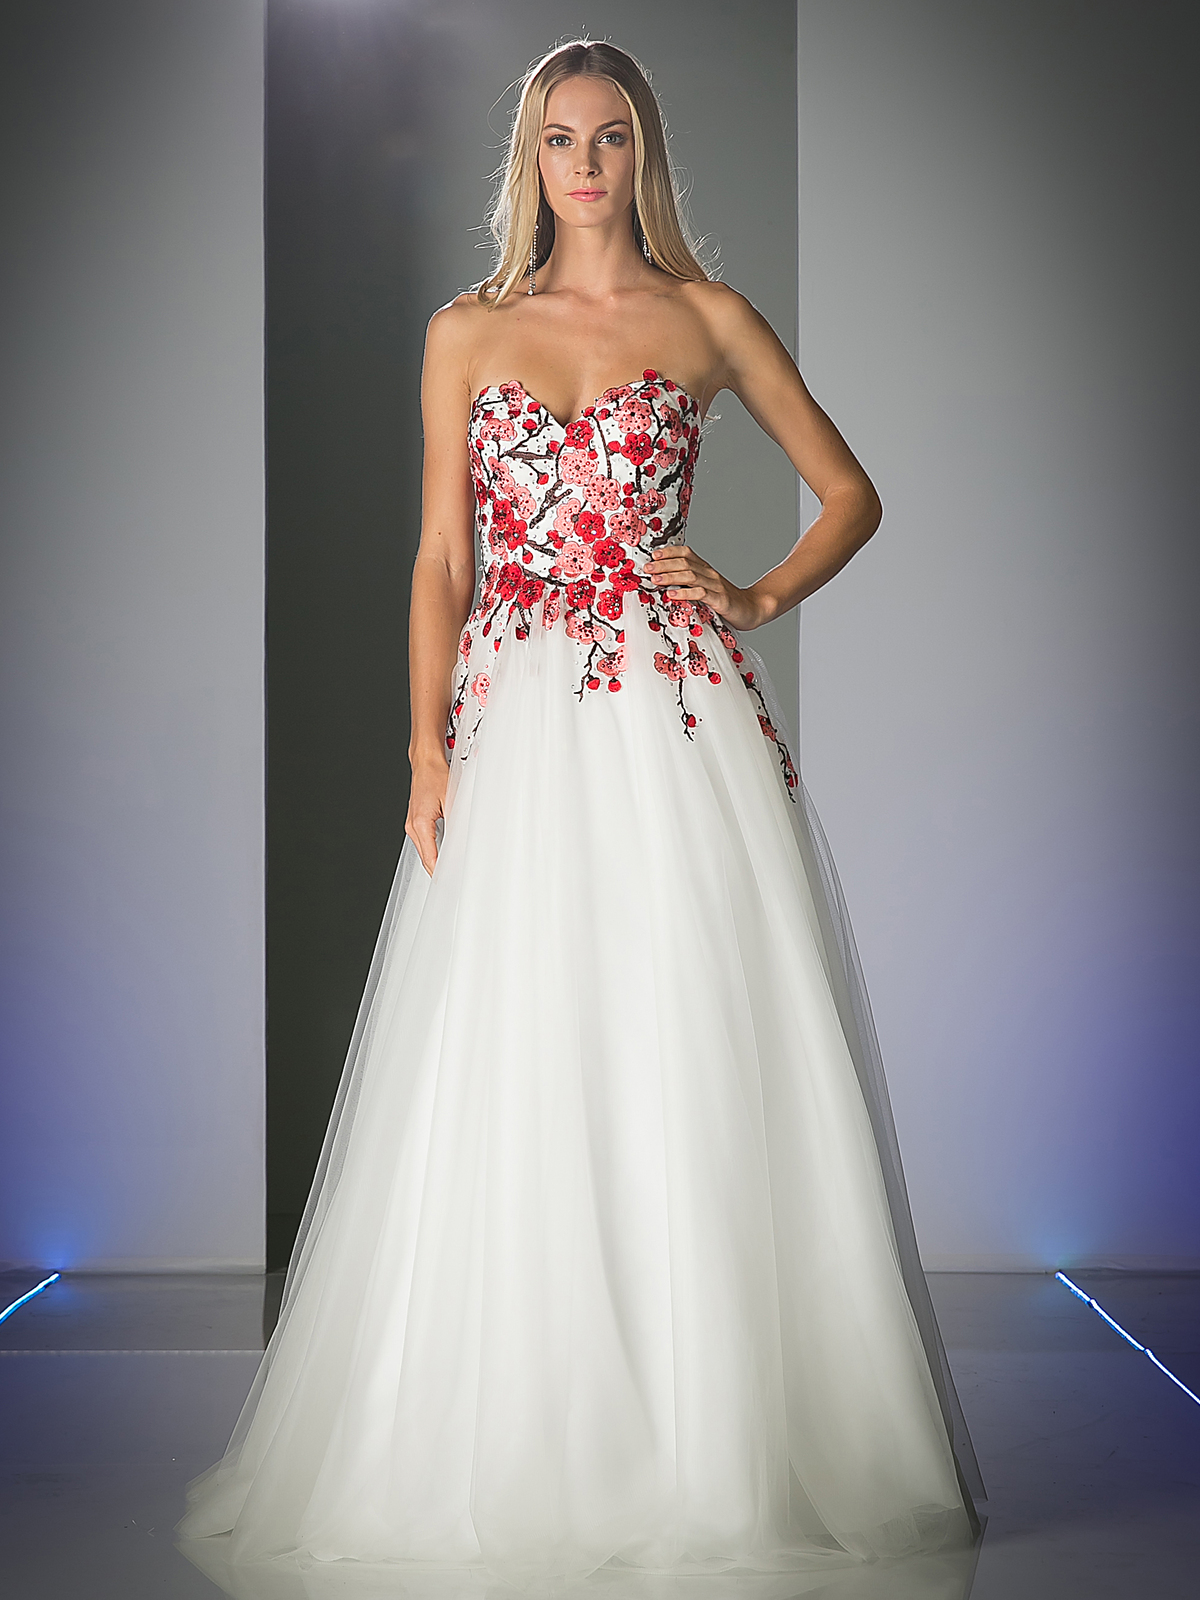 Cherry Blossom Sweetheart Ball Gown | Sung Boutique L.A.